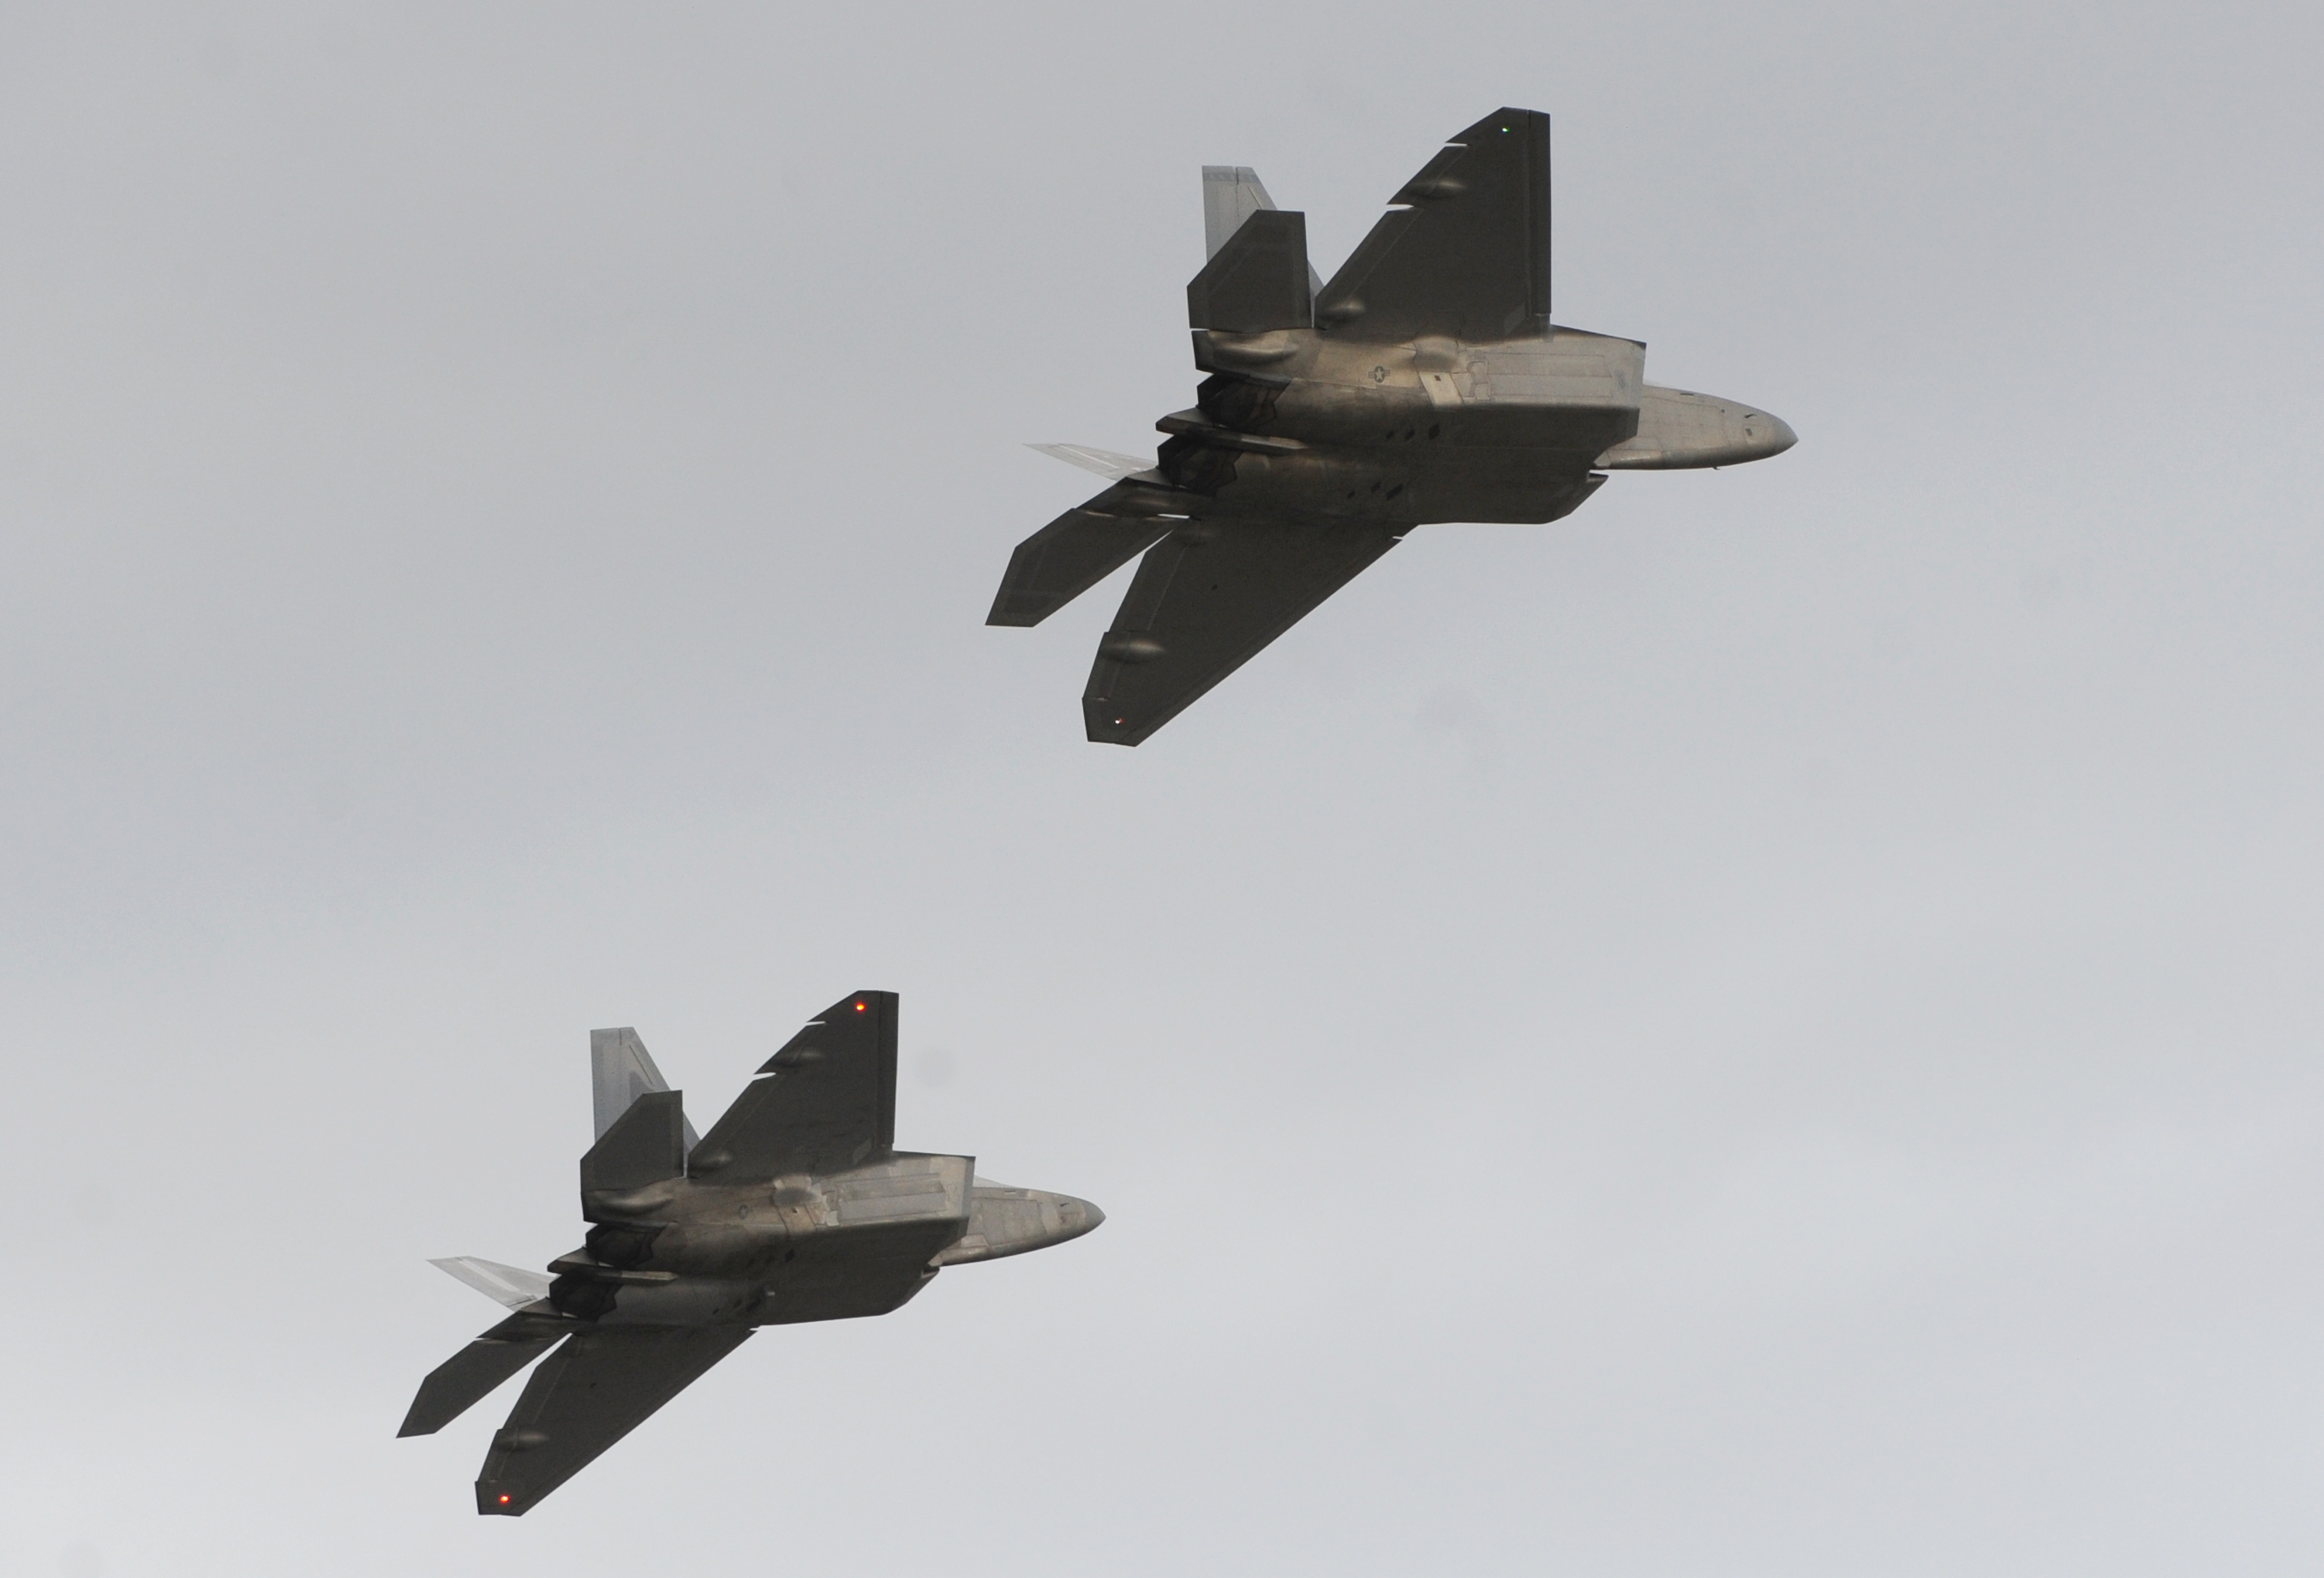 BILL ROTH / Anchorage Daily News F-22 Raptors could be seen in the air over Joint Base Elmendorf-Richardson on Wednesday, Sept. 21, 2011, for the first time in four months after being grounded for safety concerns with the oxygen system.